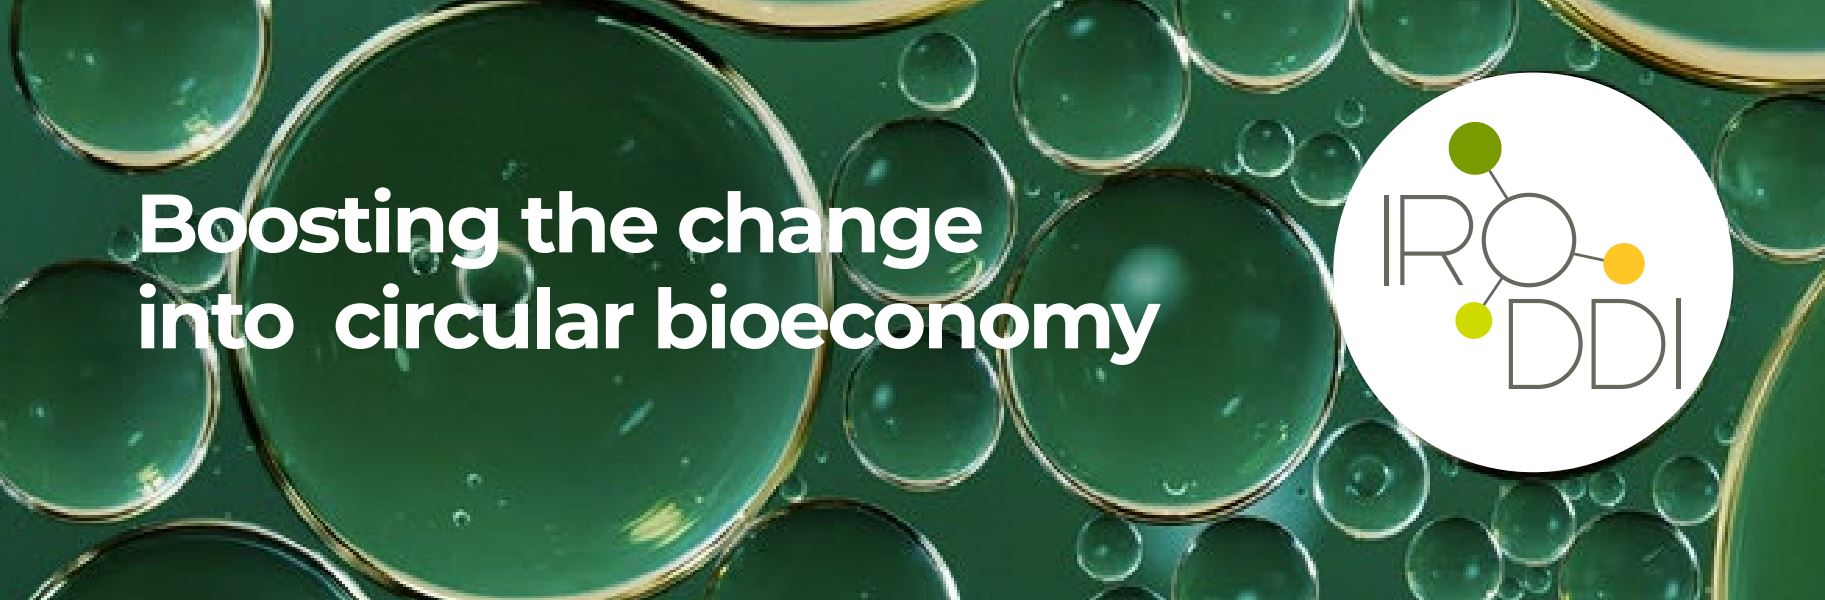 IRODDI continues with its focus on the circular bioeconomy